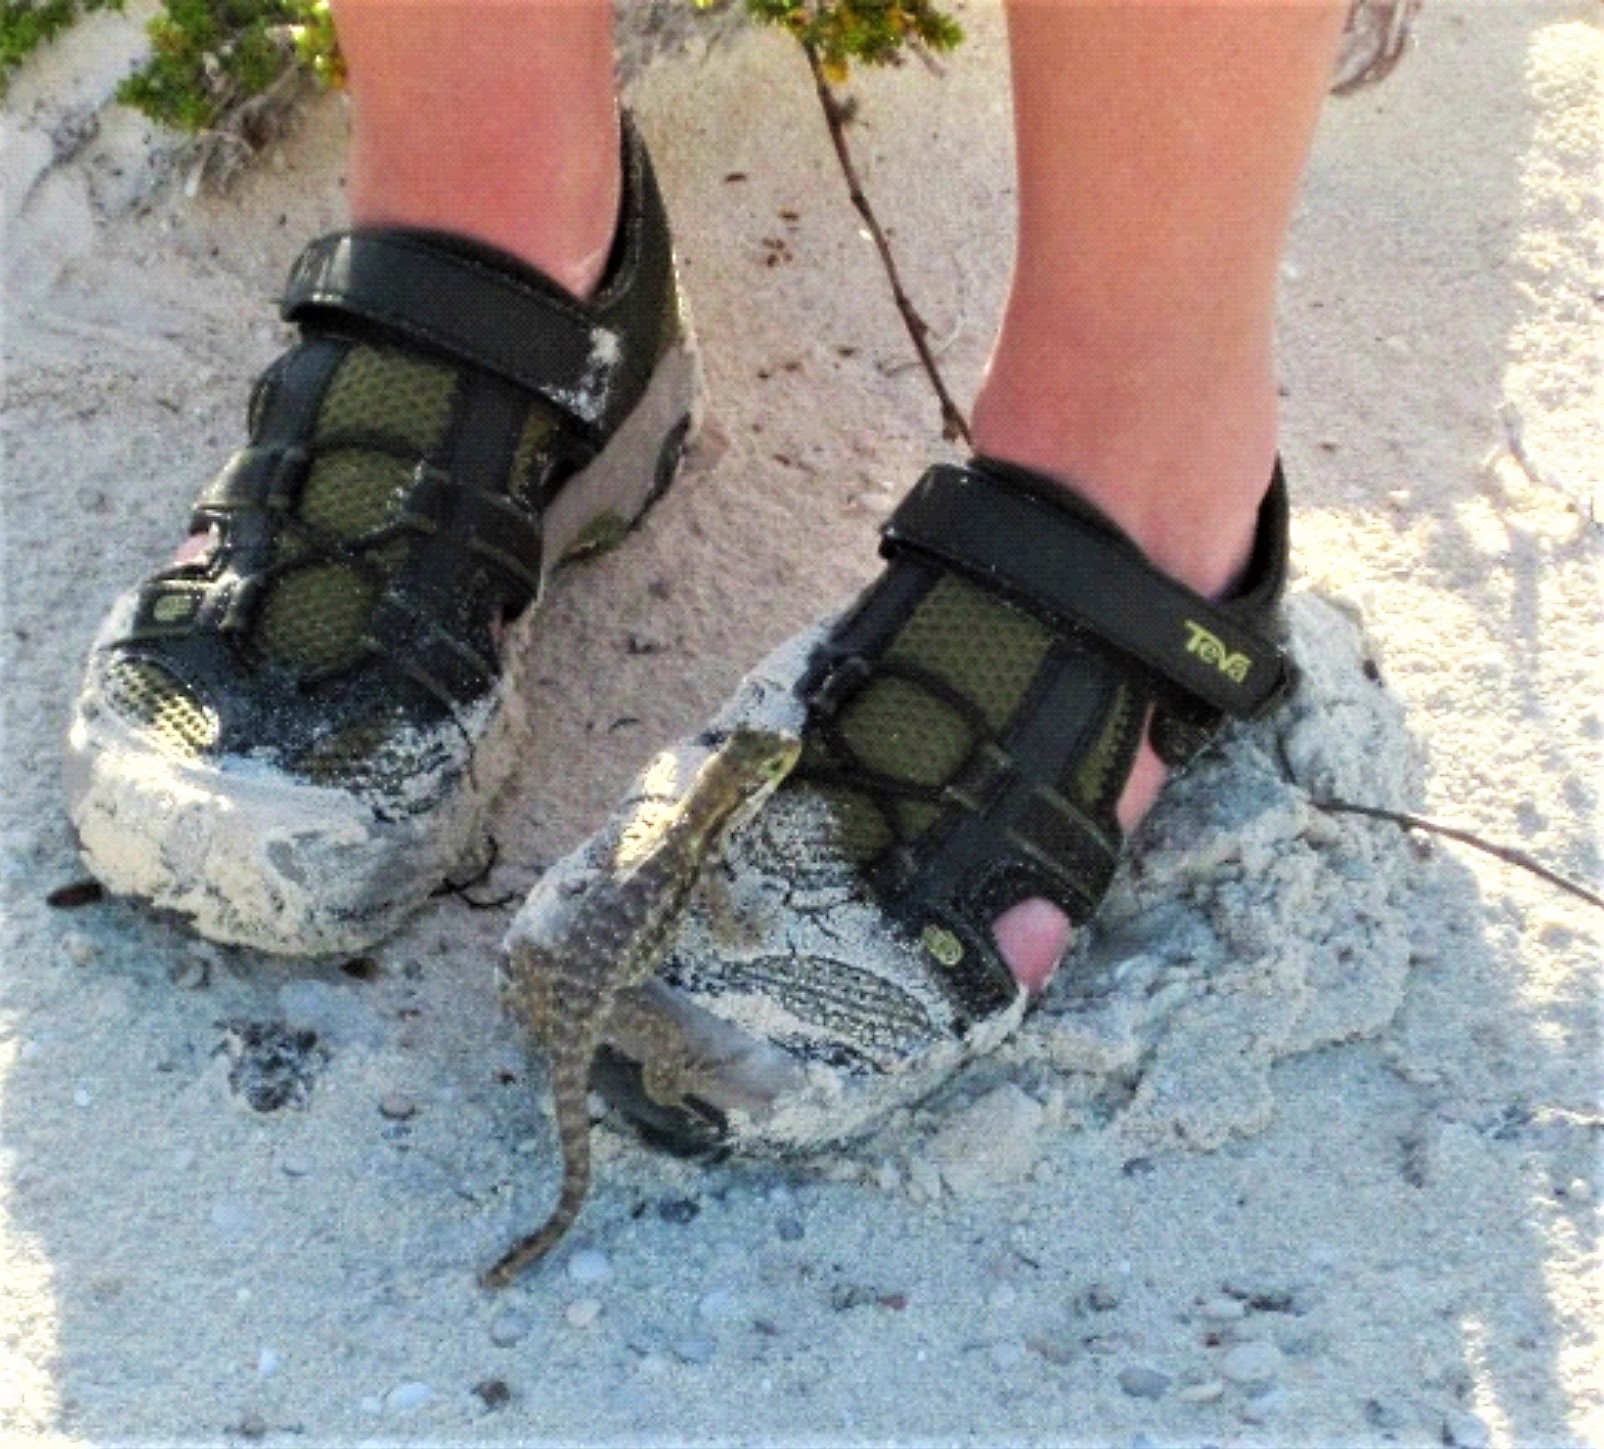 A Bahamian curly-tail lizard climbs onto a human shoe on a beach